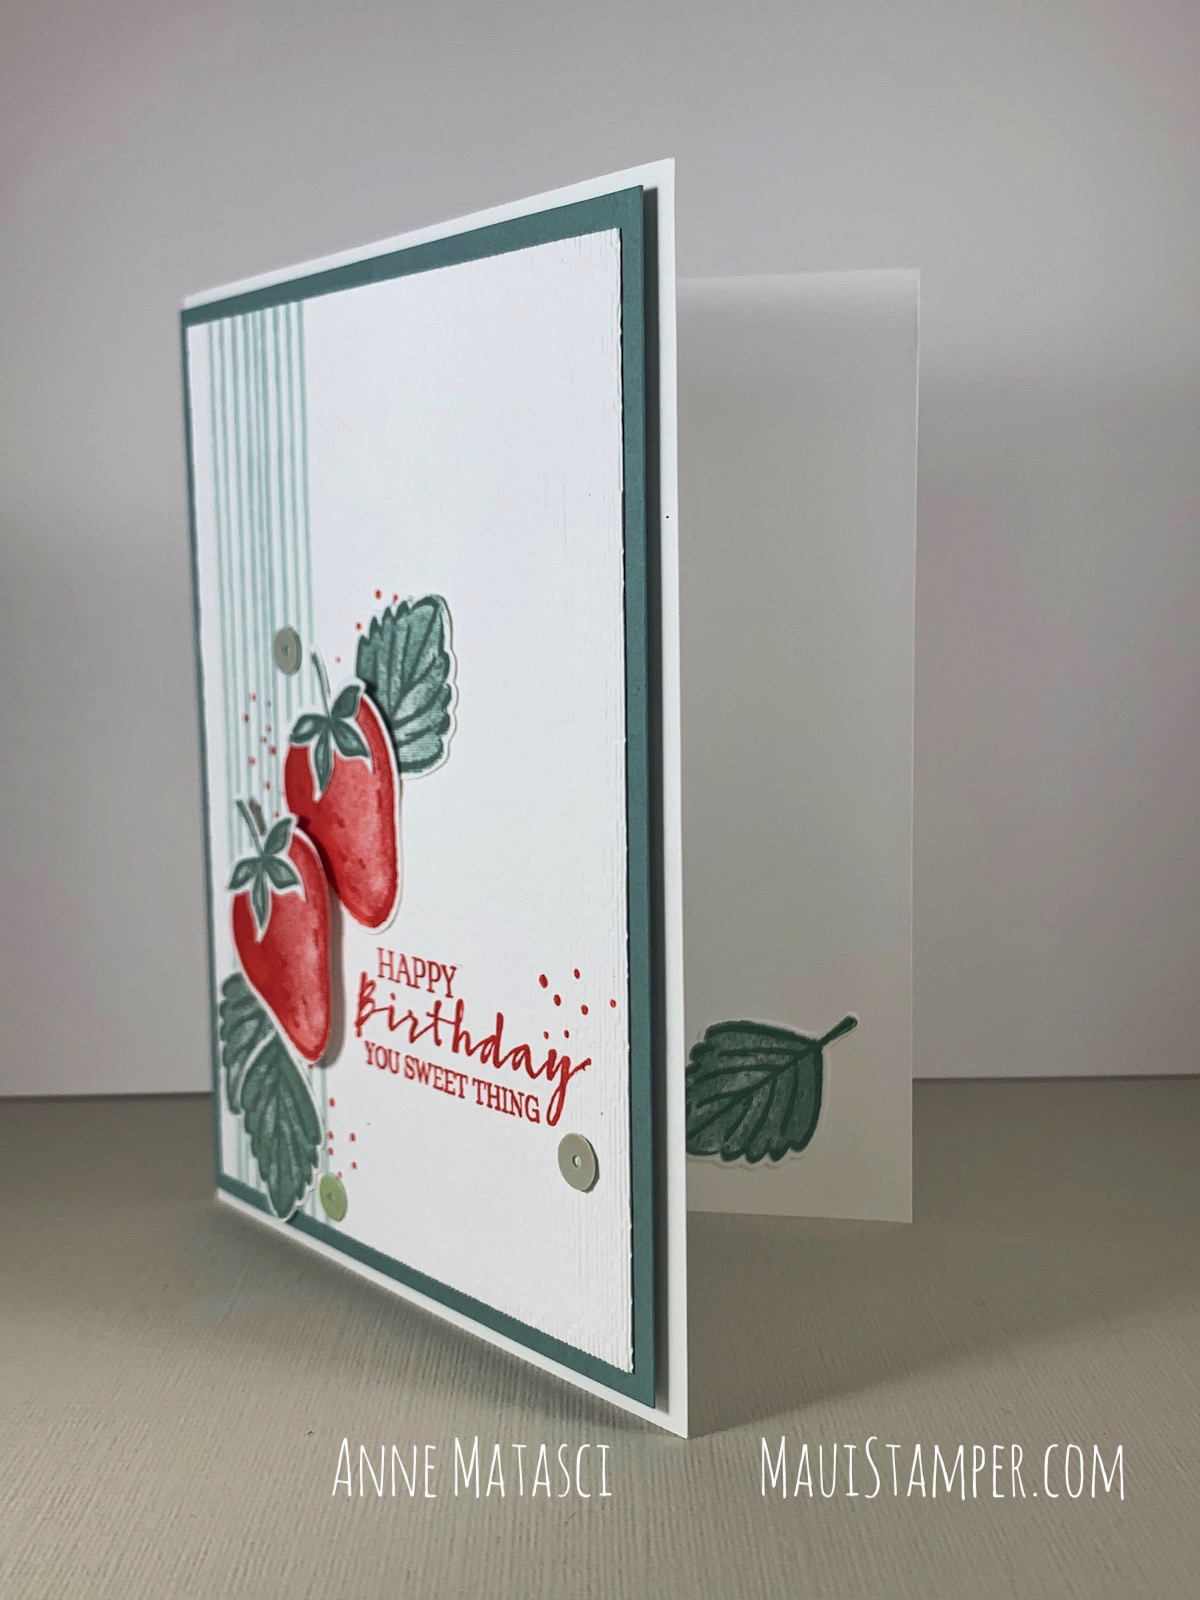 Maui Stamper Stampin Up Sweet Strawberry birthday card